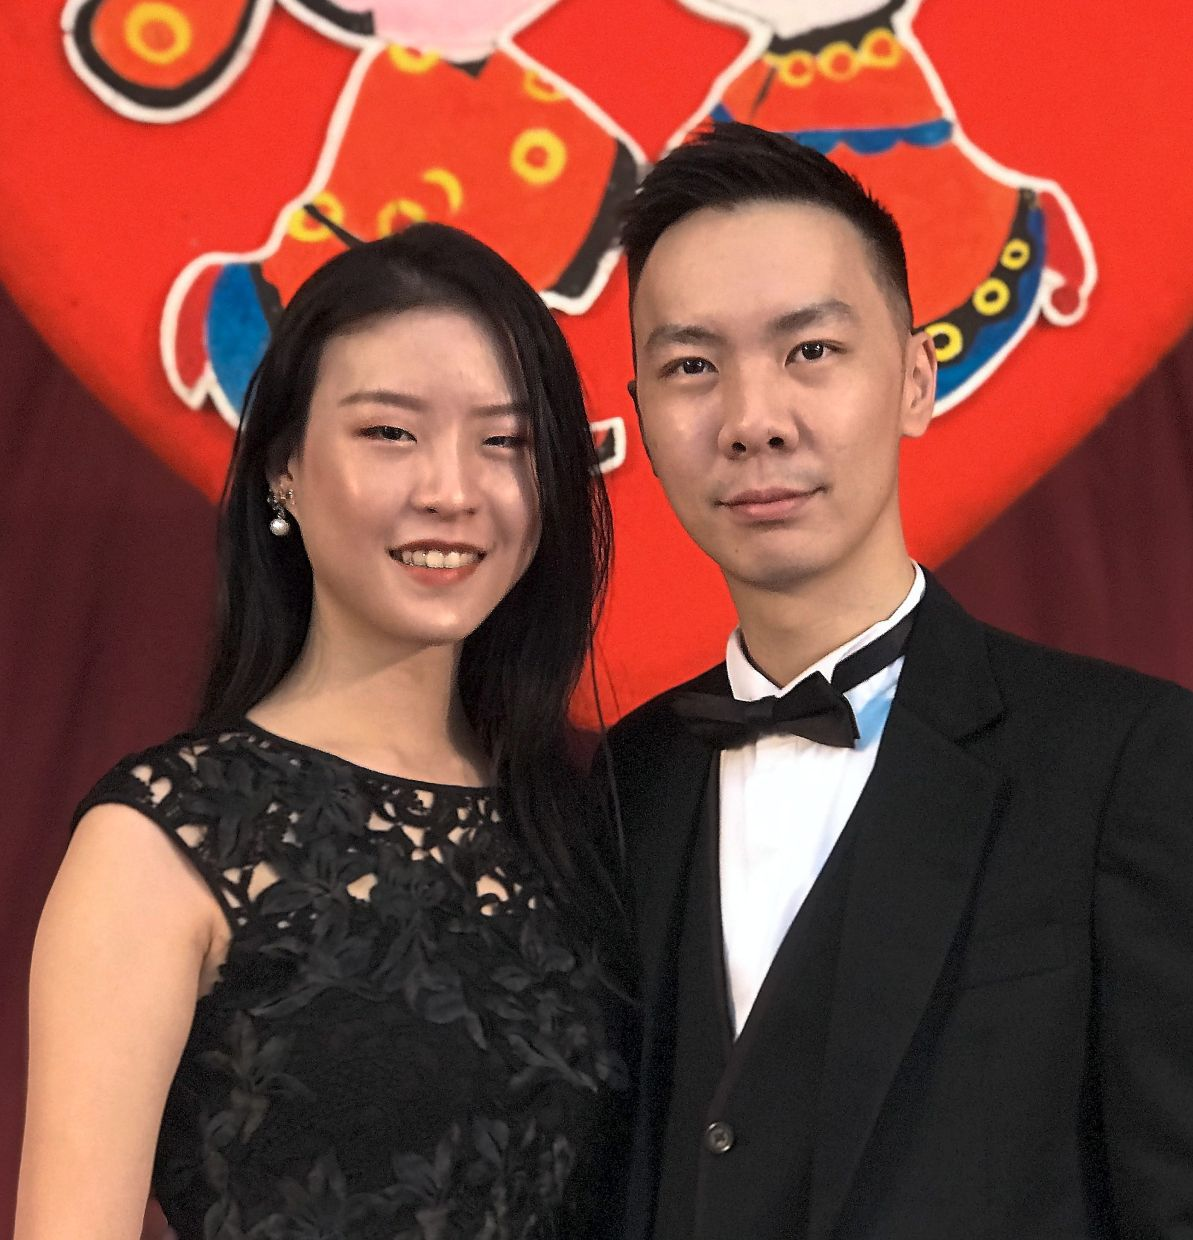 Lee (left) and Chai were among the couples who chose 10.10 for the date of their marriage.